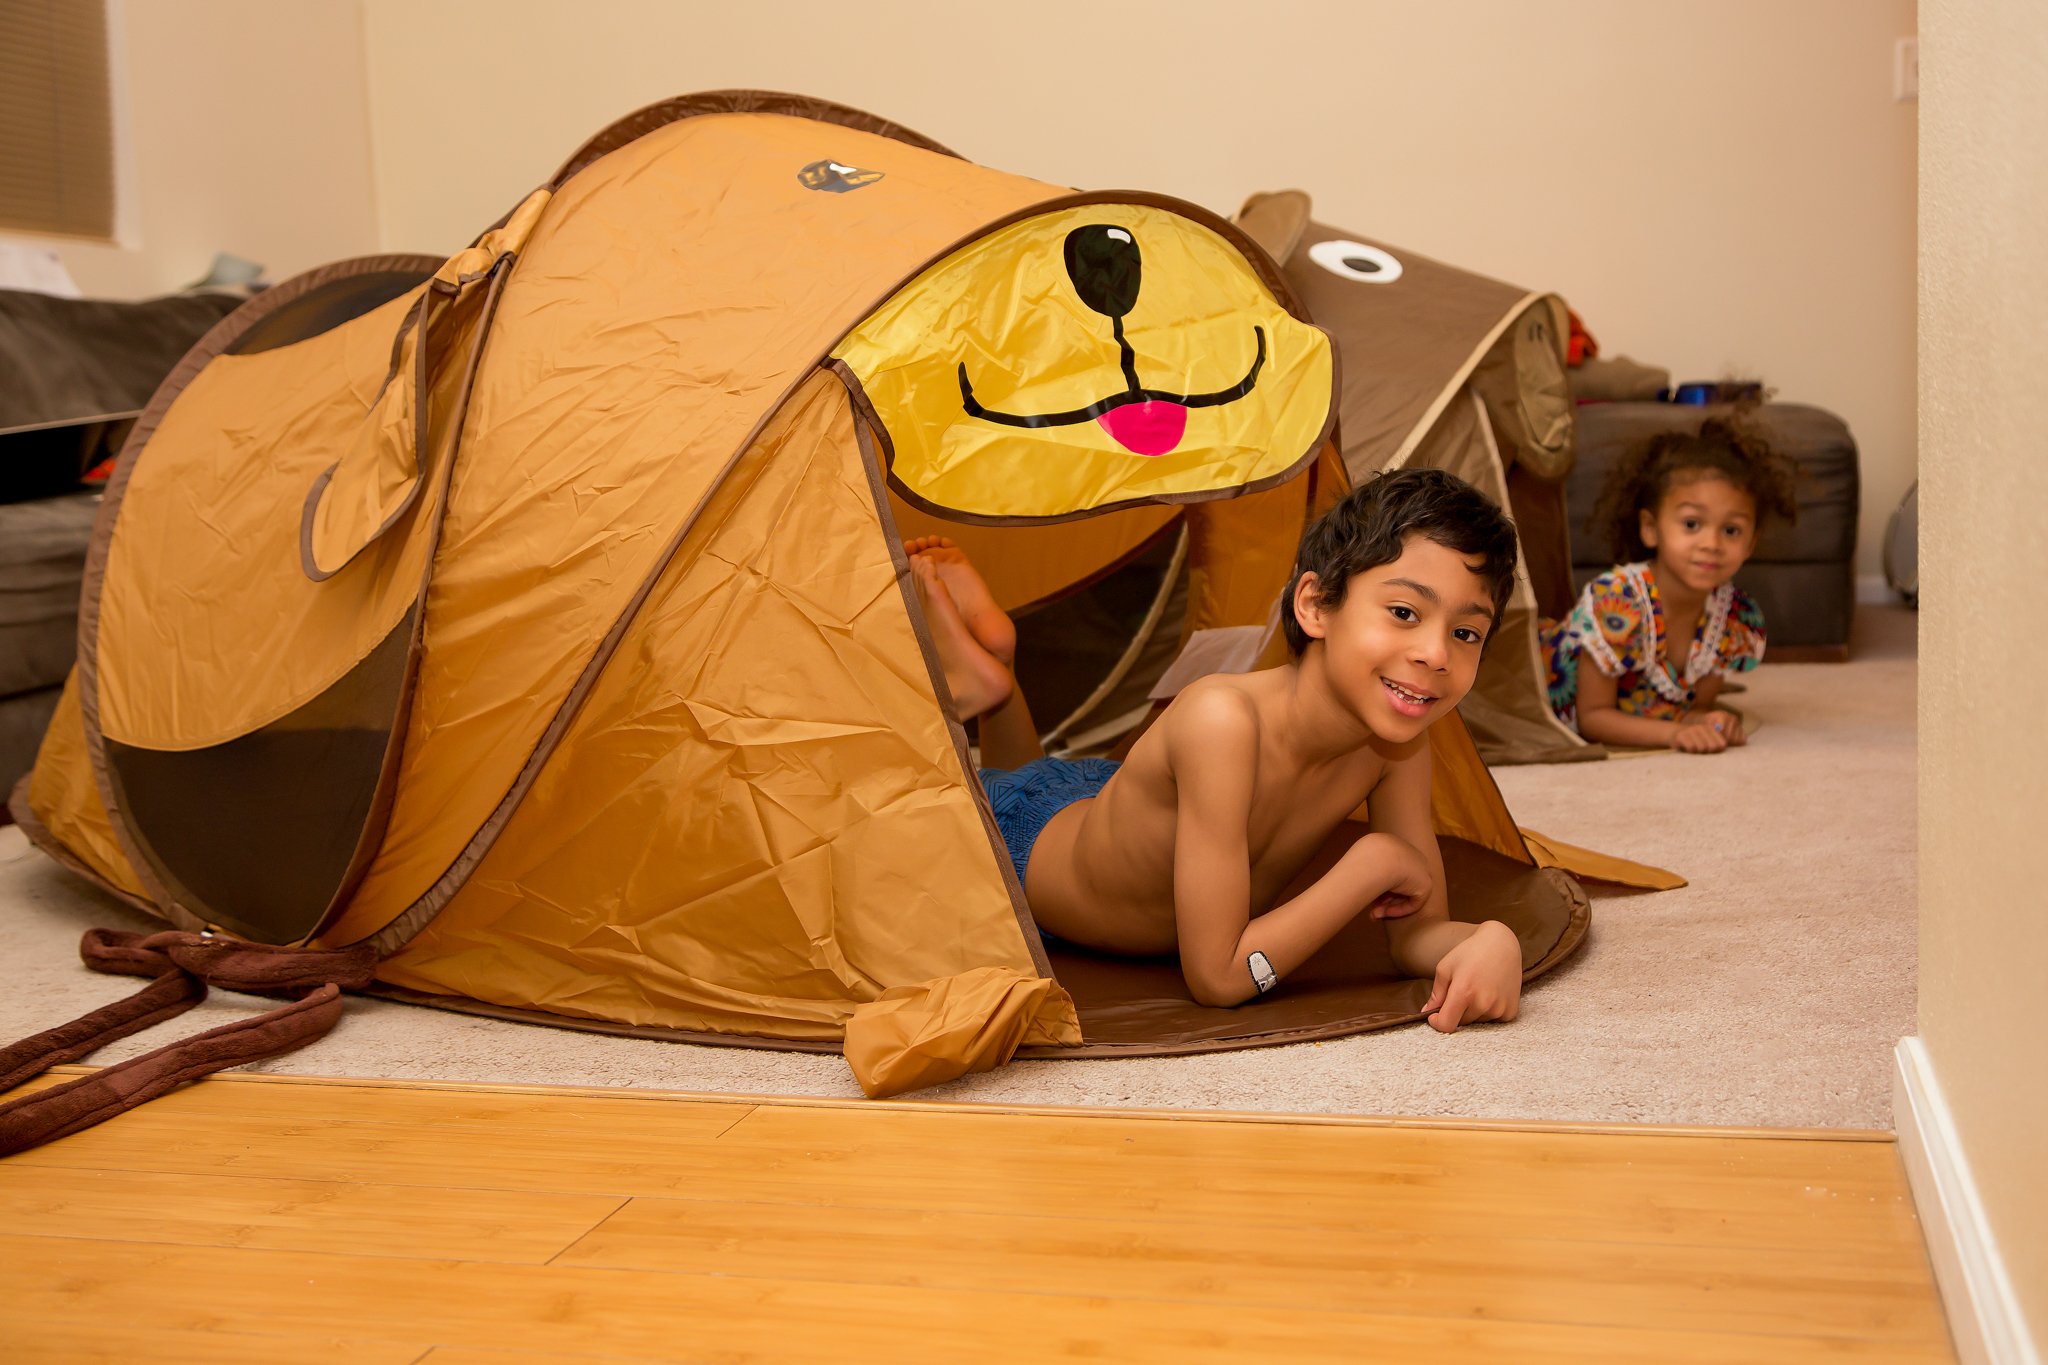 Coolest Tents Ever!